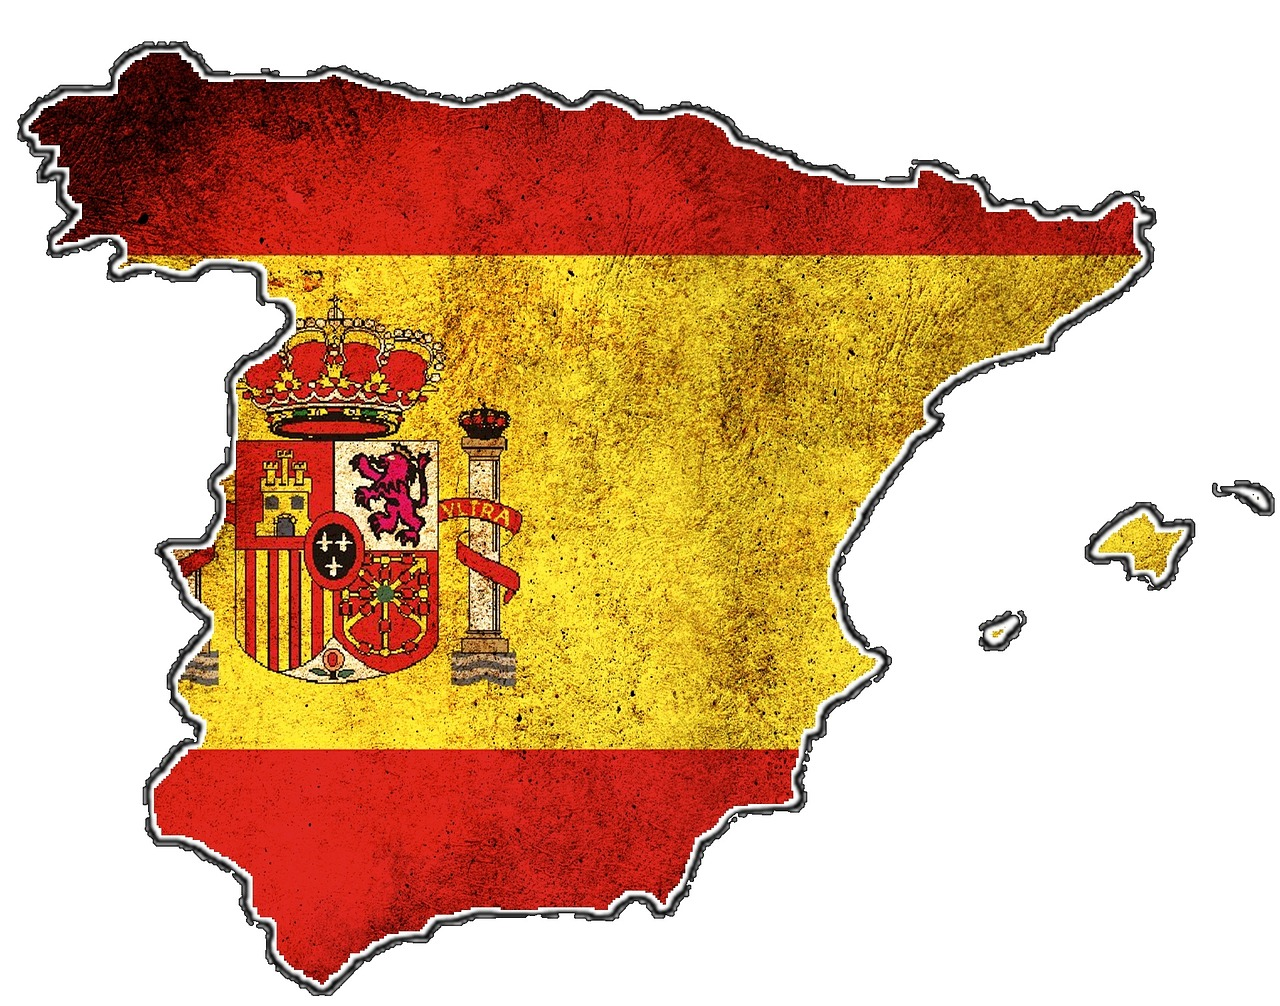 Map of Spain. Photo by Tumisu on Pixabay.